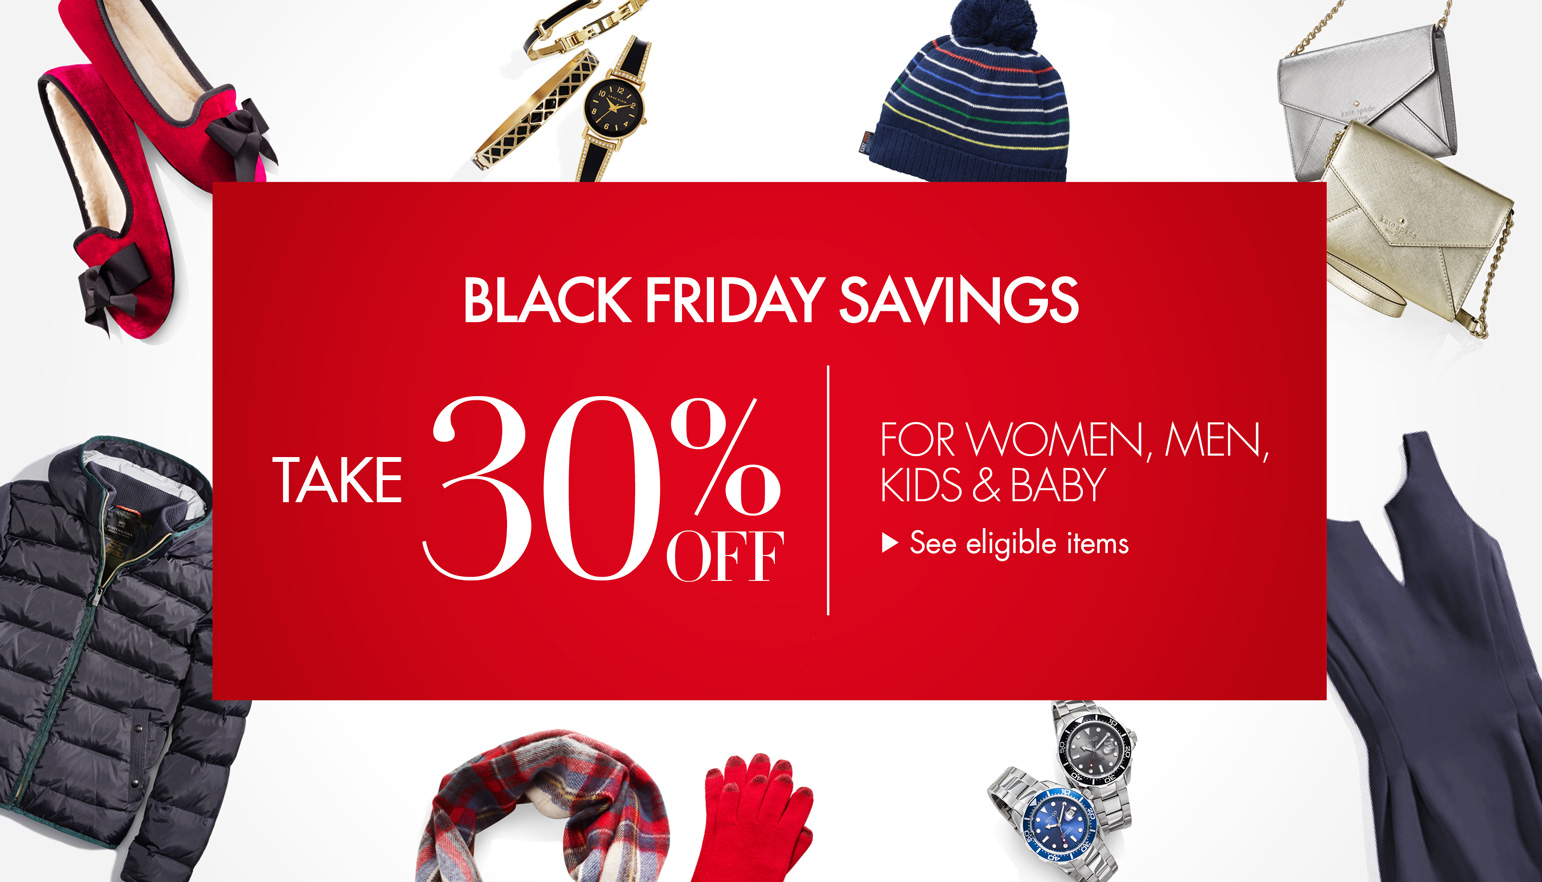 Black Friday Savings - 30% Off for Women, Men, Kids & Baby